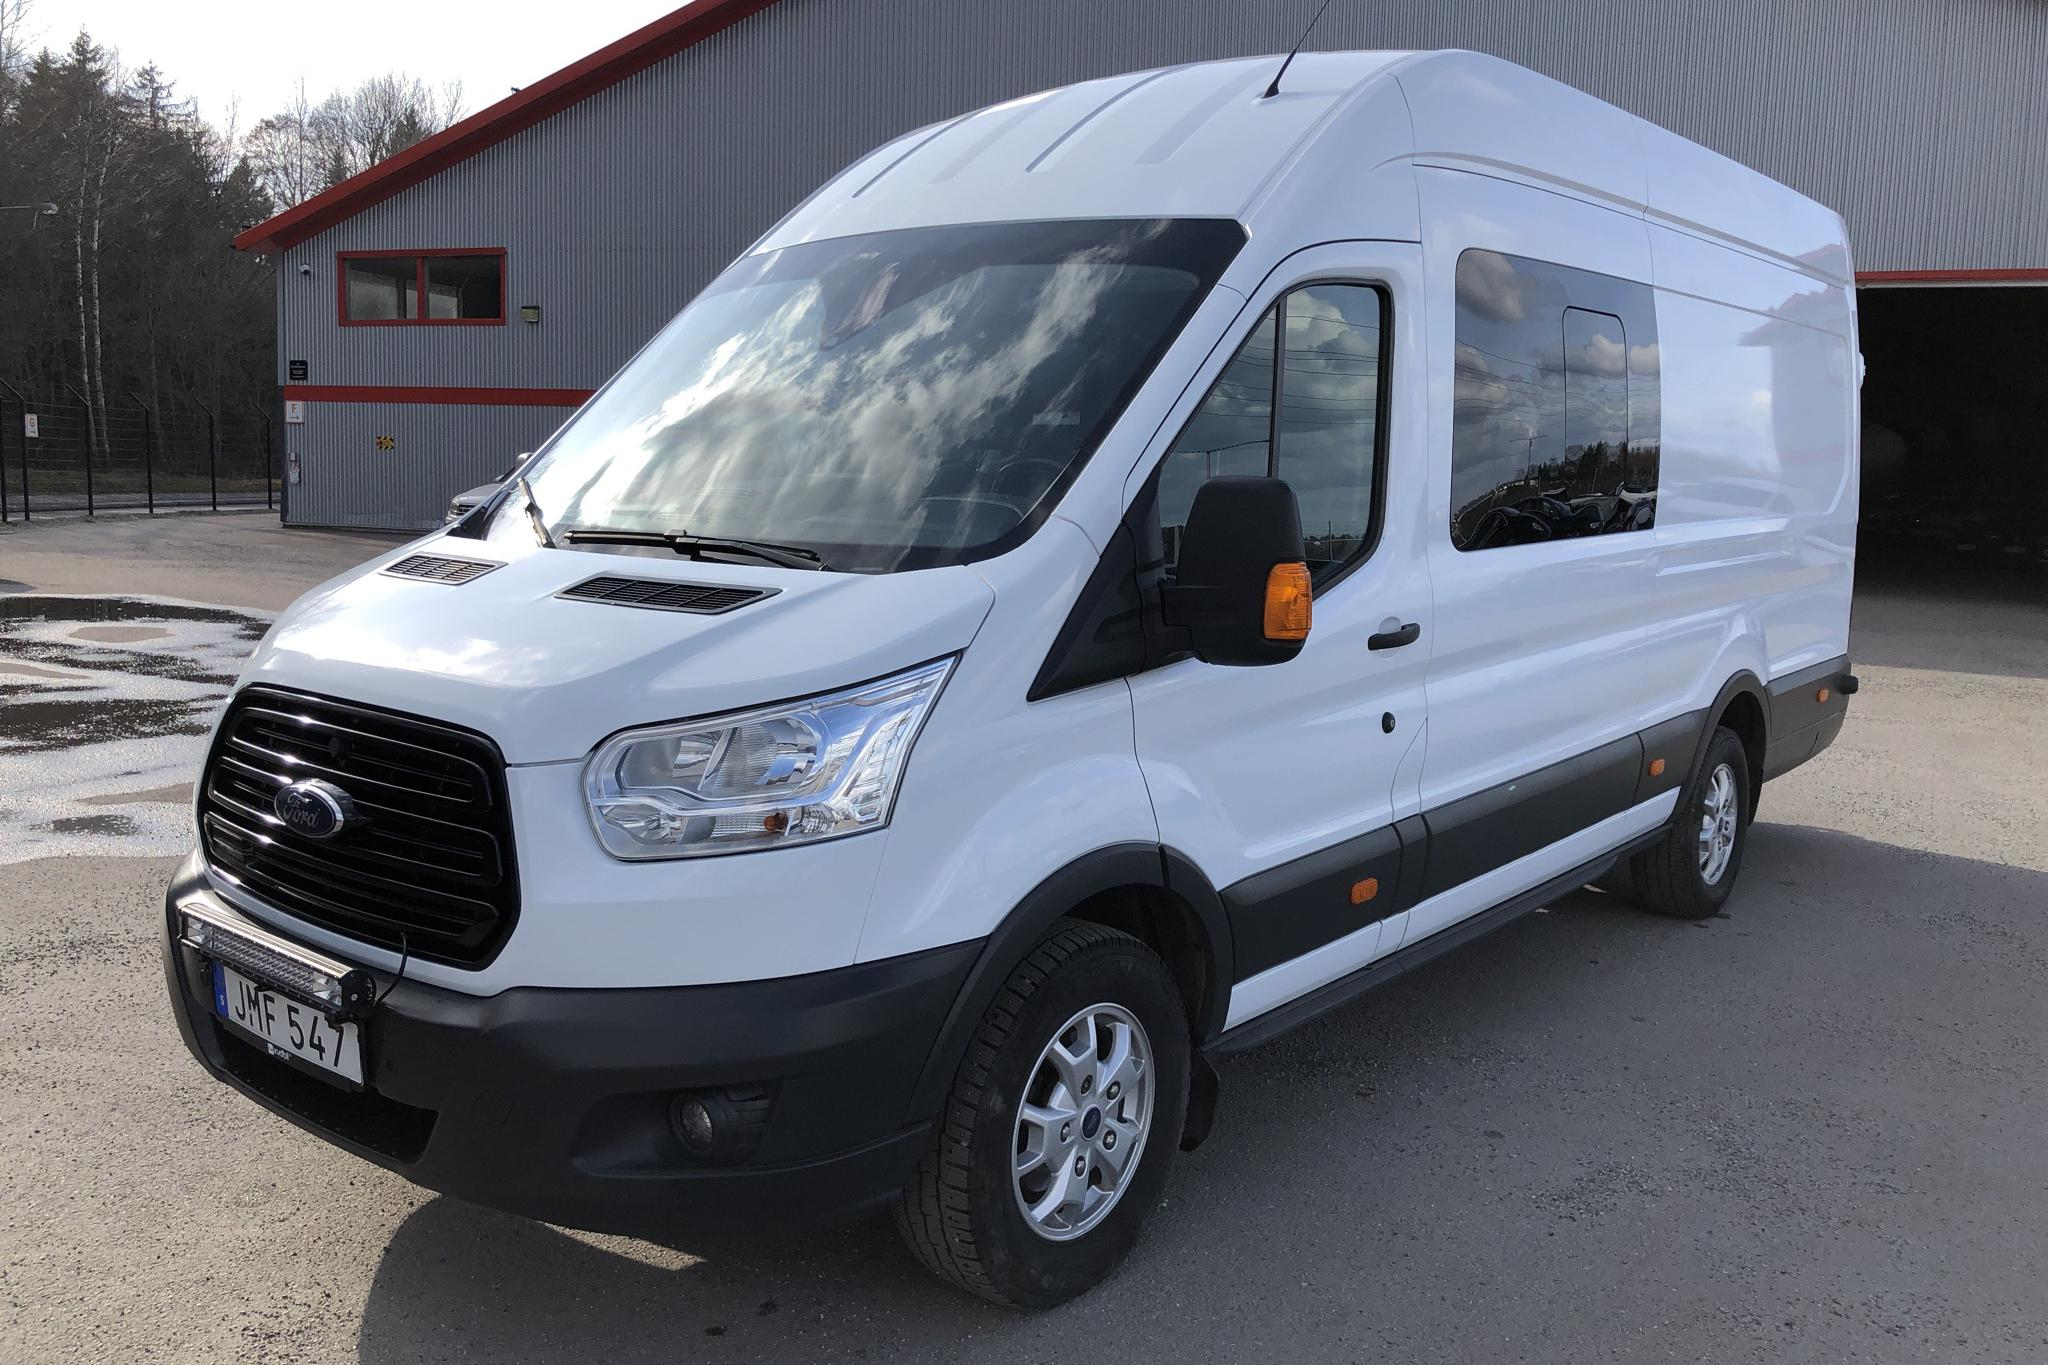 Ford Transit Chassi 350 2.0 TDCi RWD (170hk) - 109 200 km - Manual - white - 2017